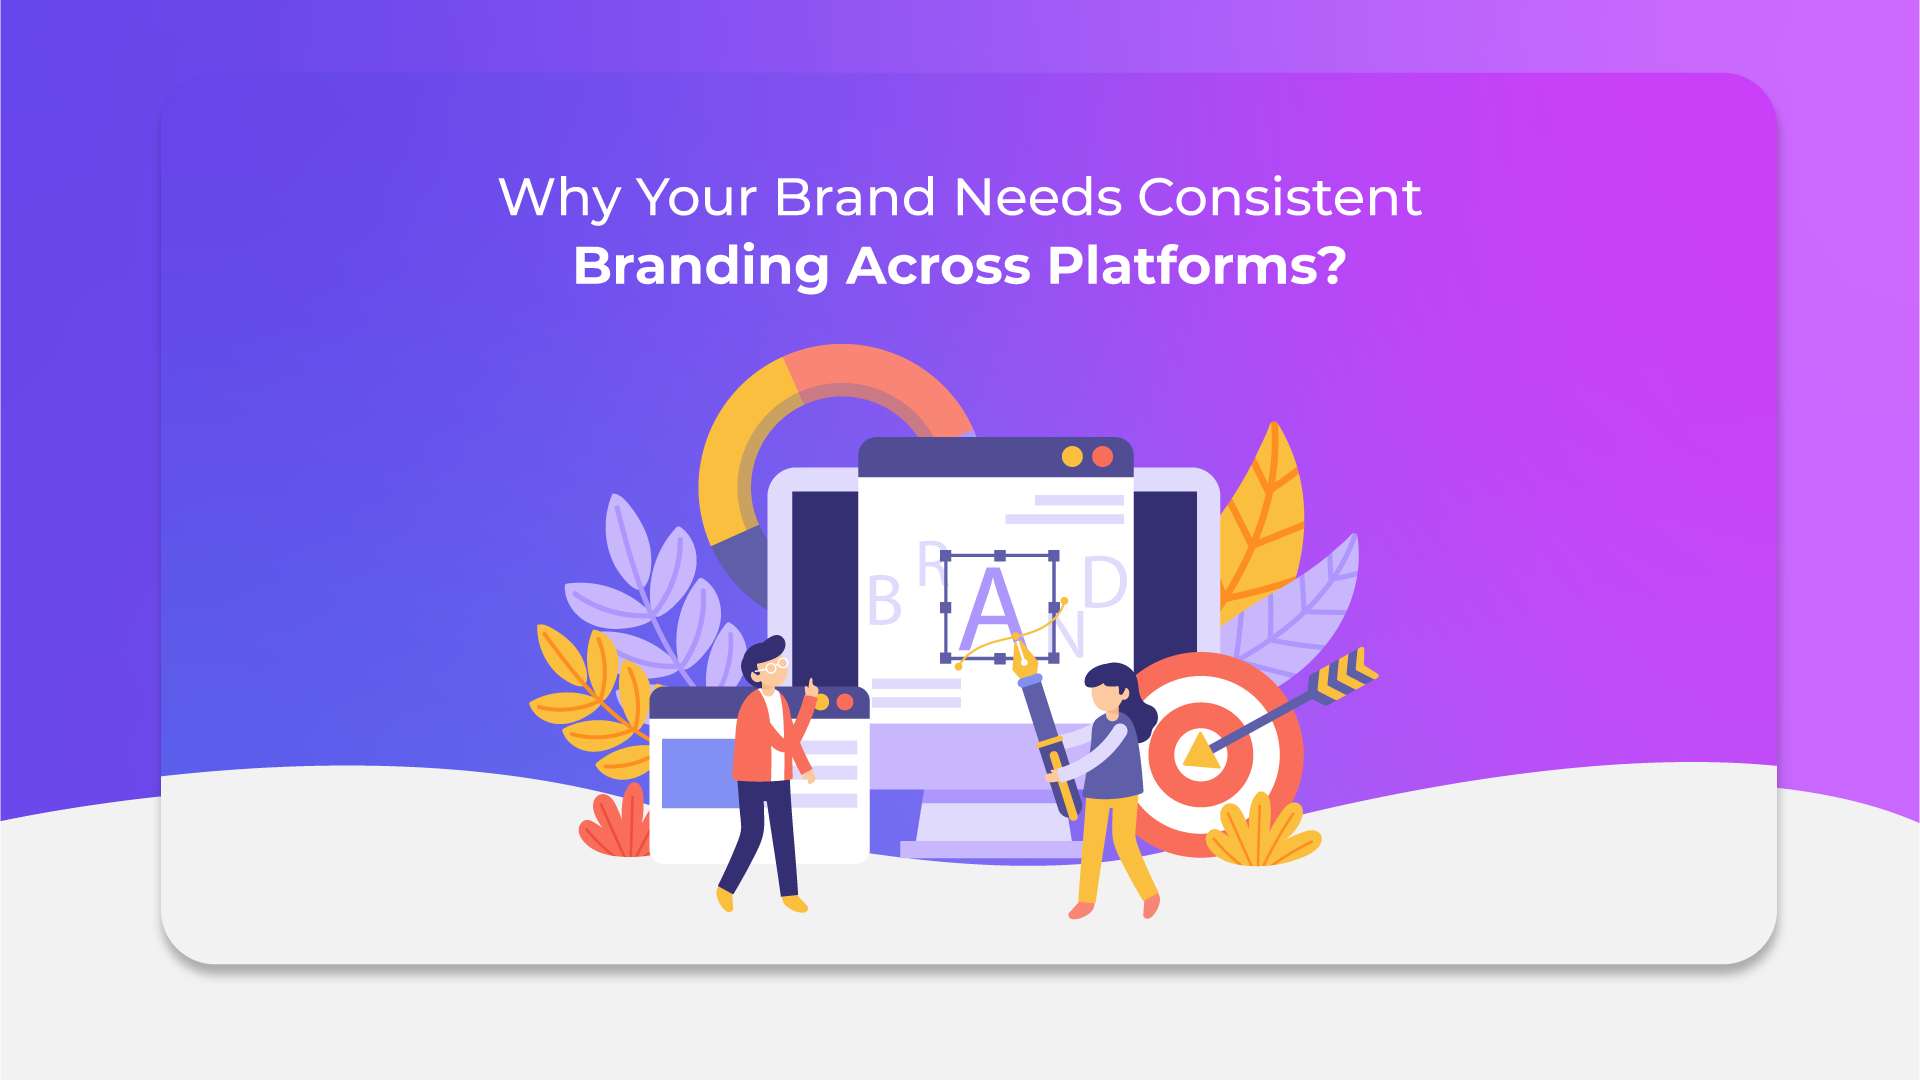 Why Your Brand Needs Consistent Branding Across Platforms?